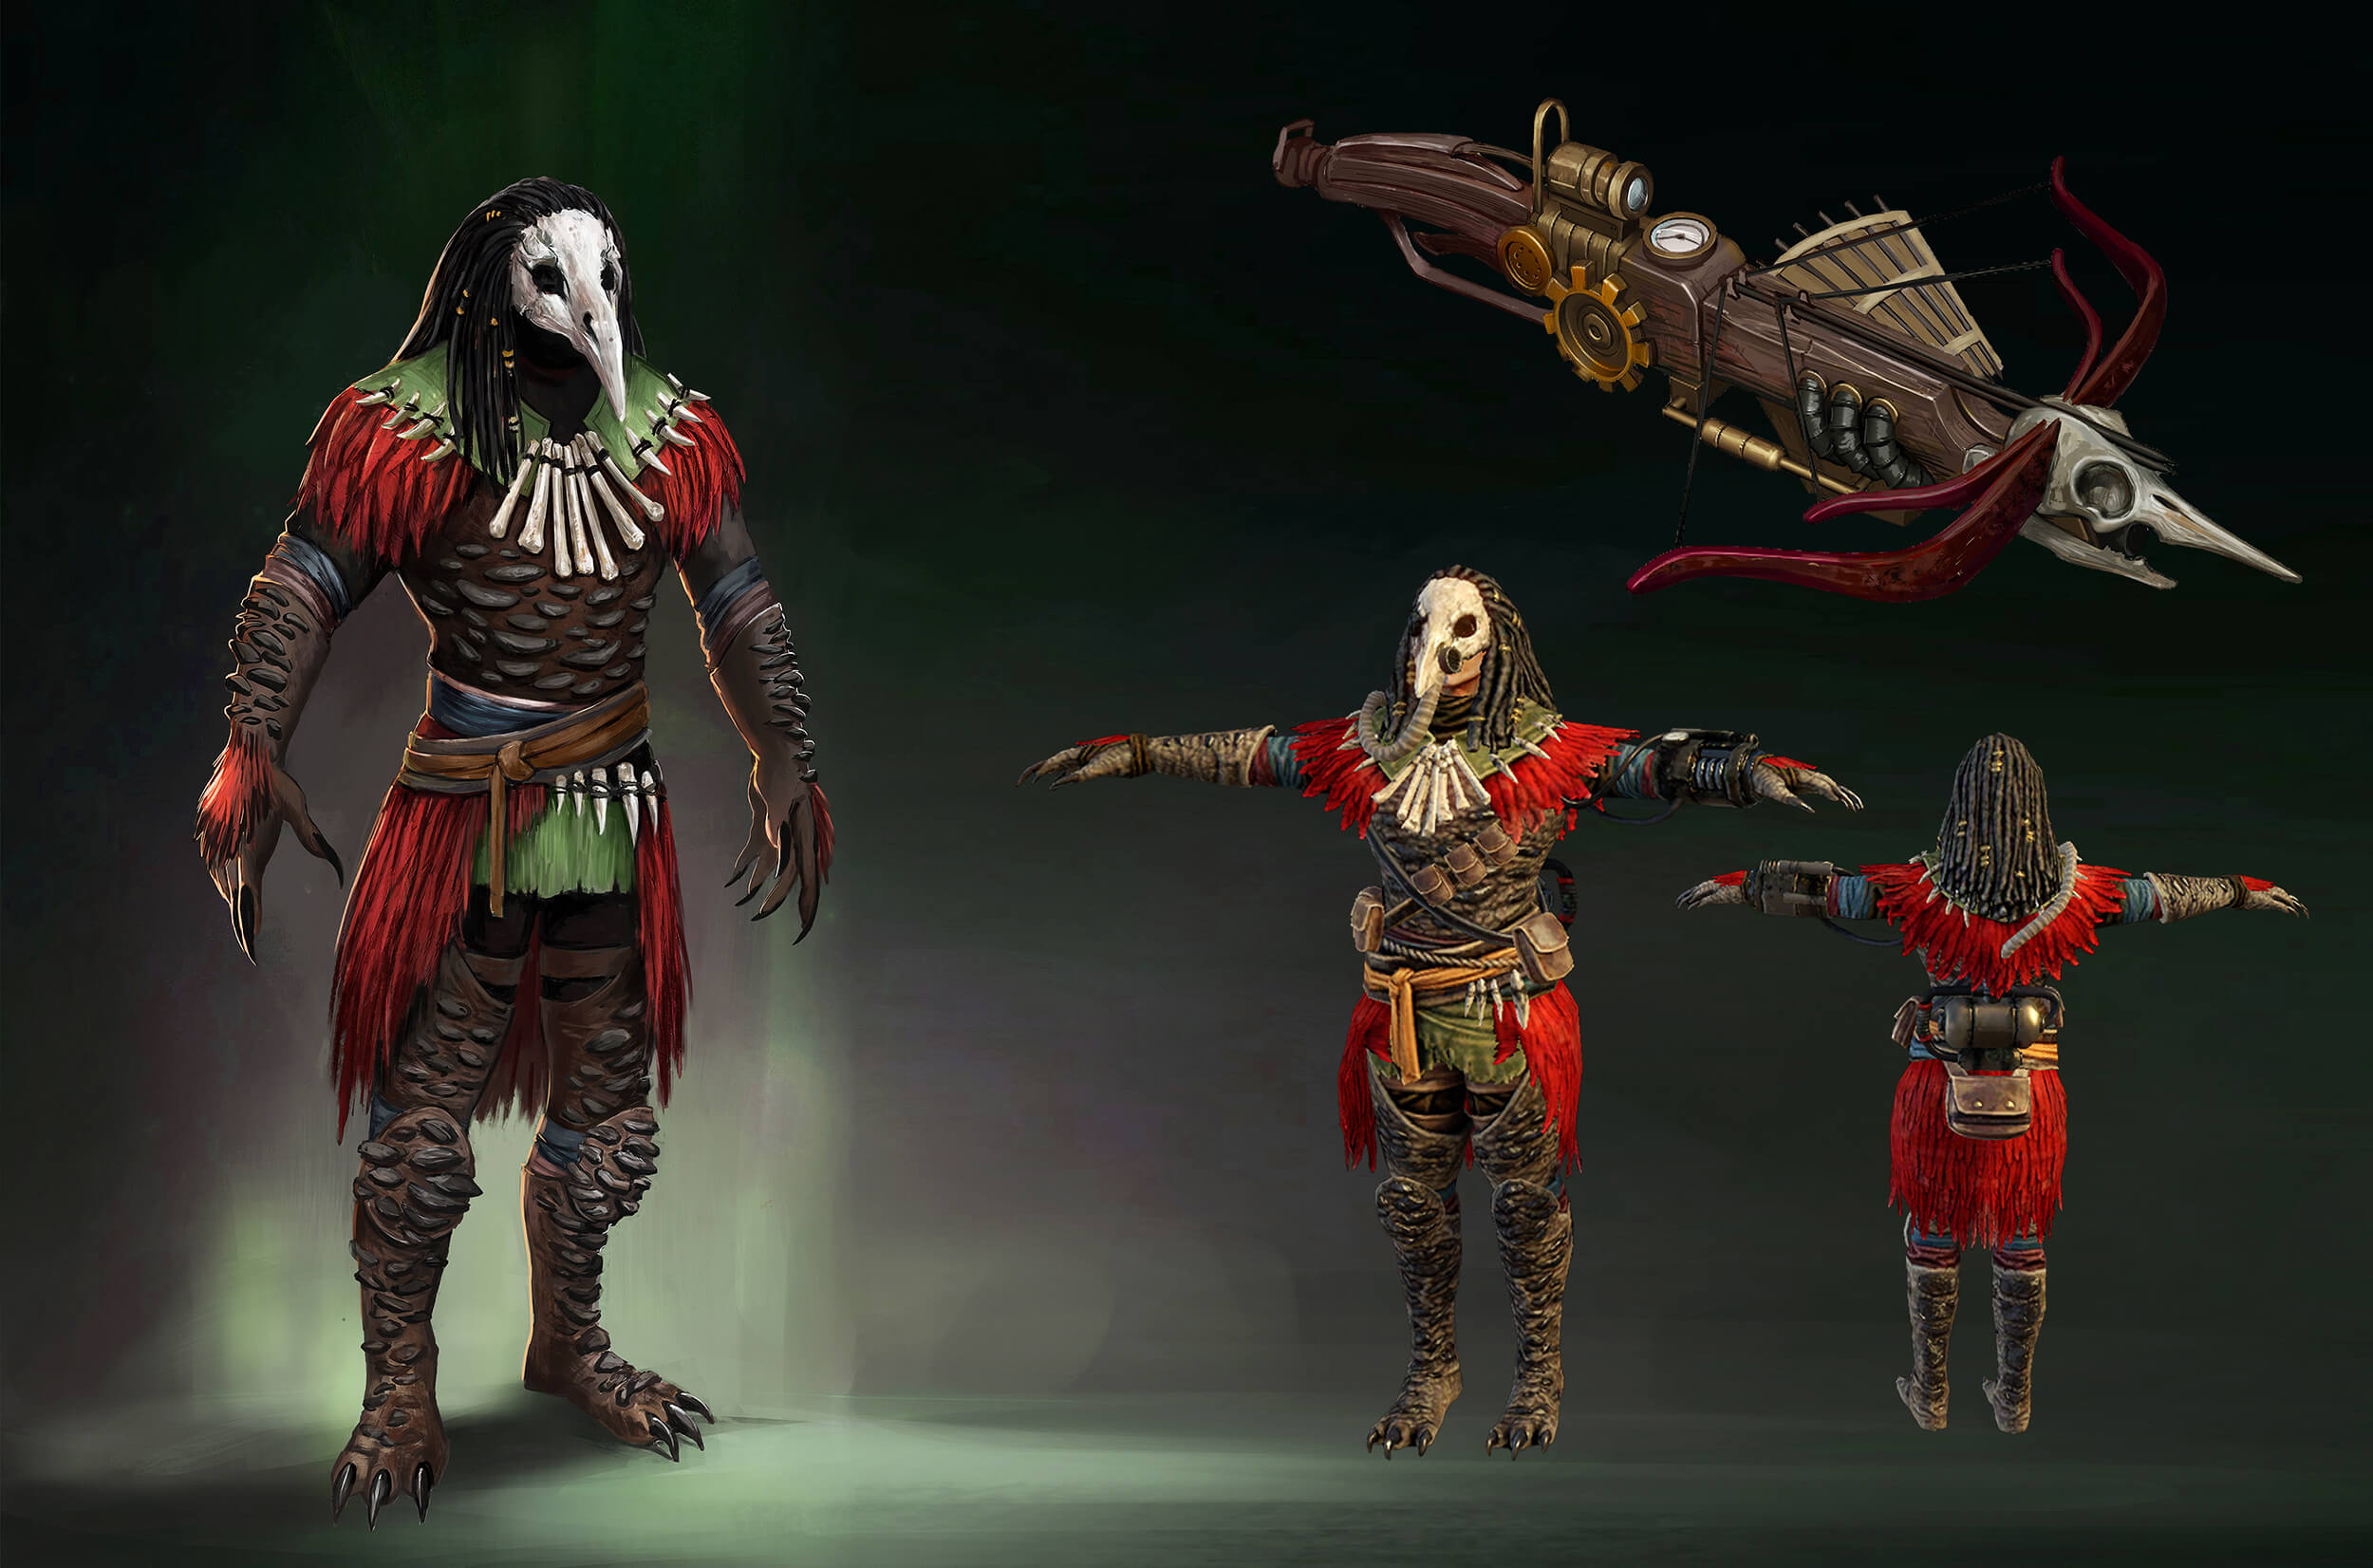 Participate in the Einhar-Themed All-Inclusive Talent Competition